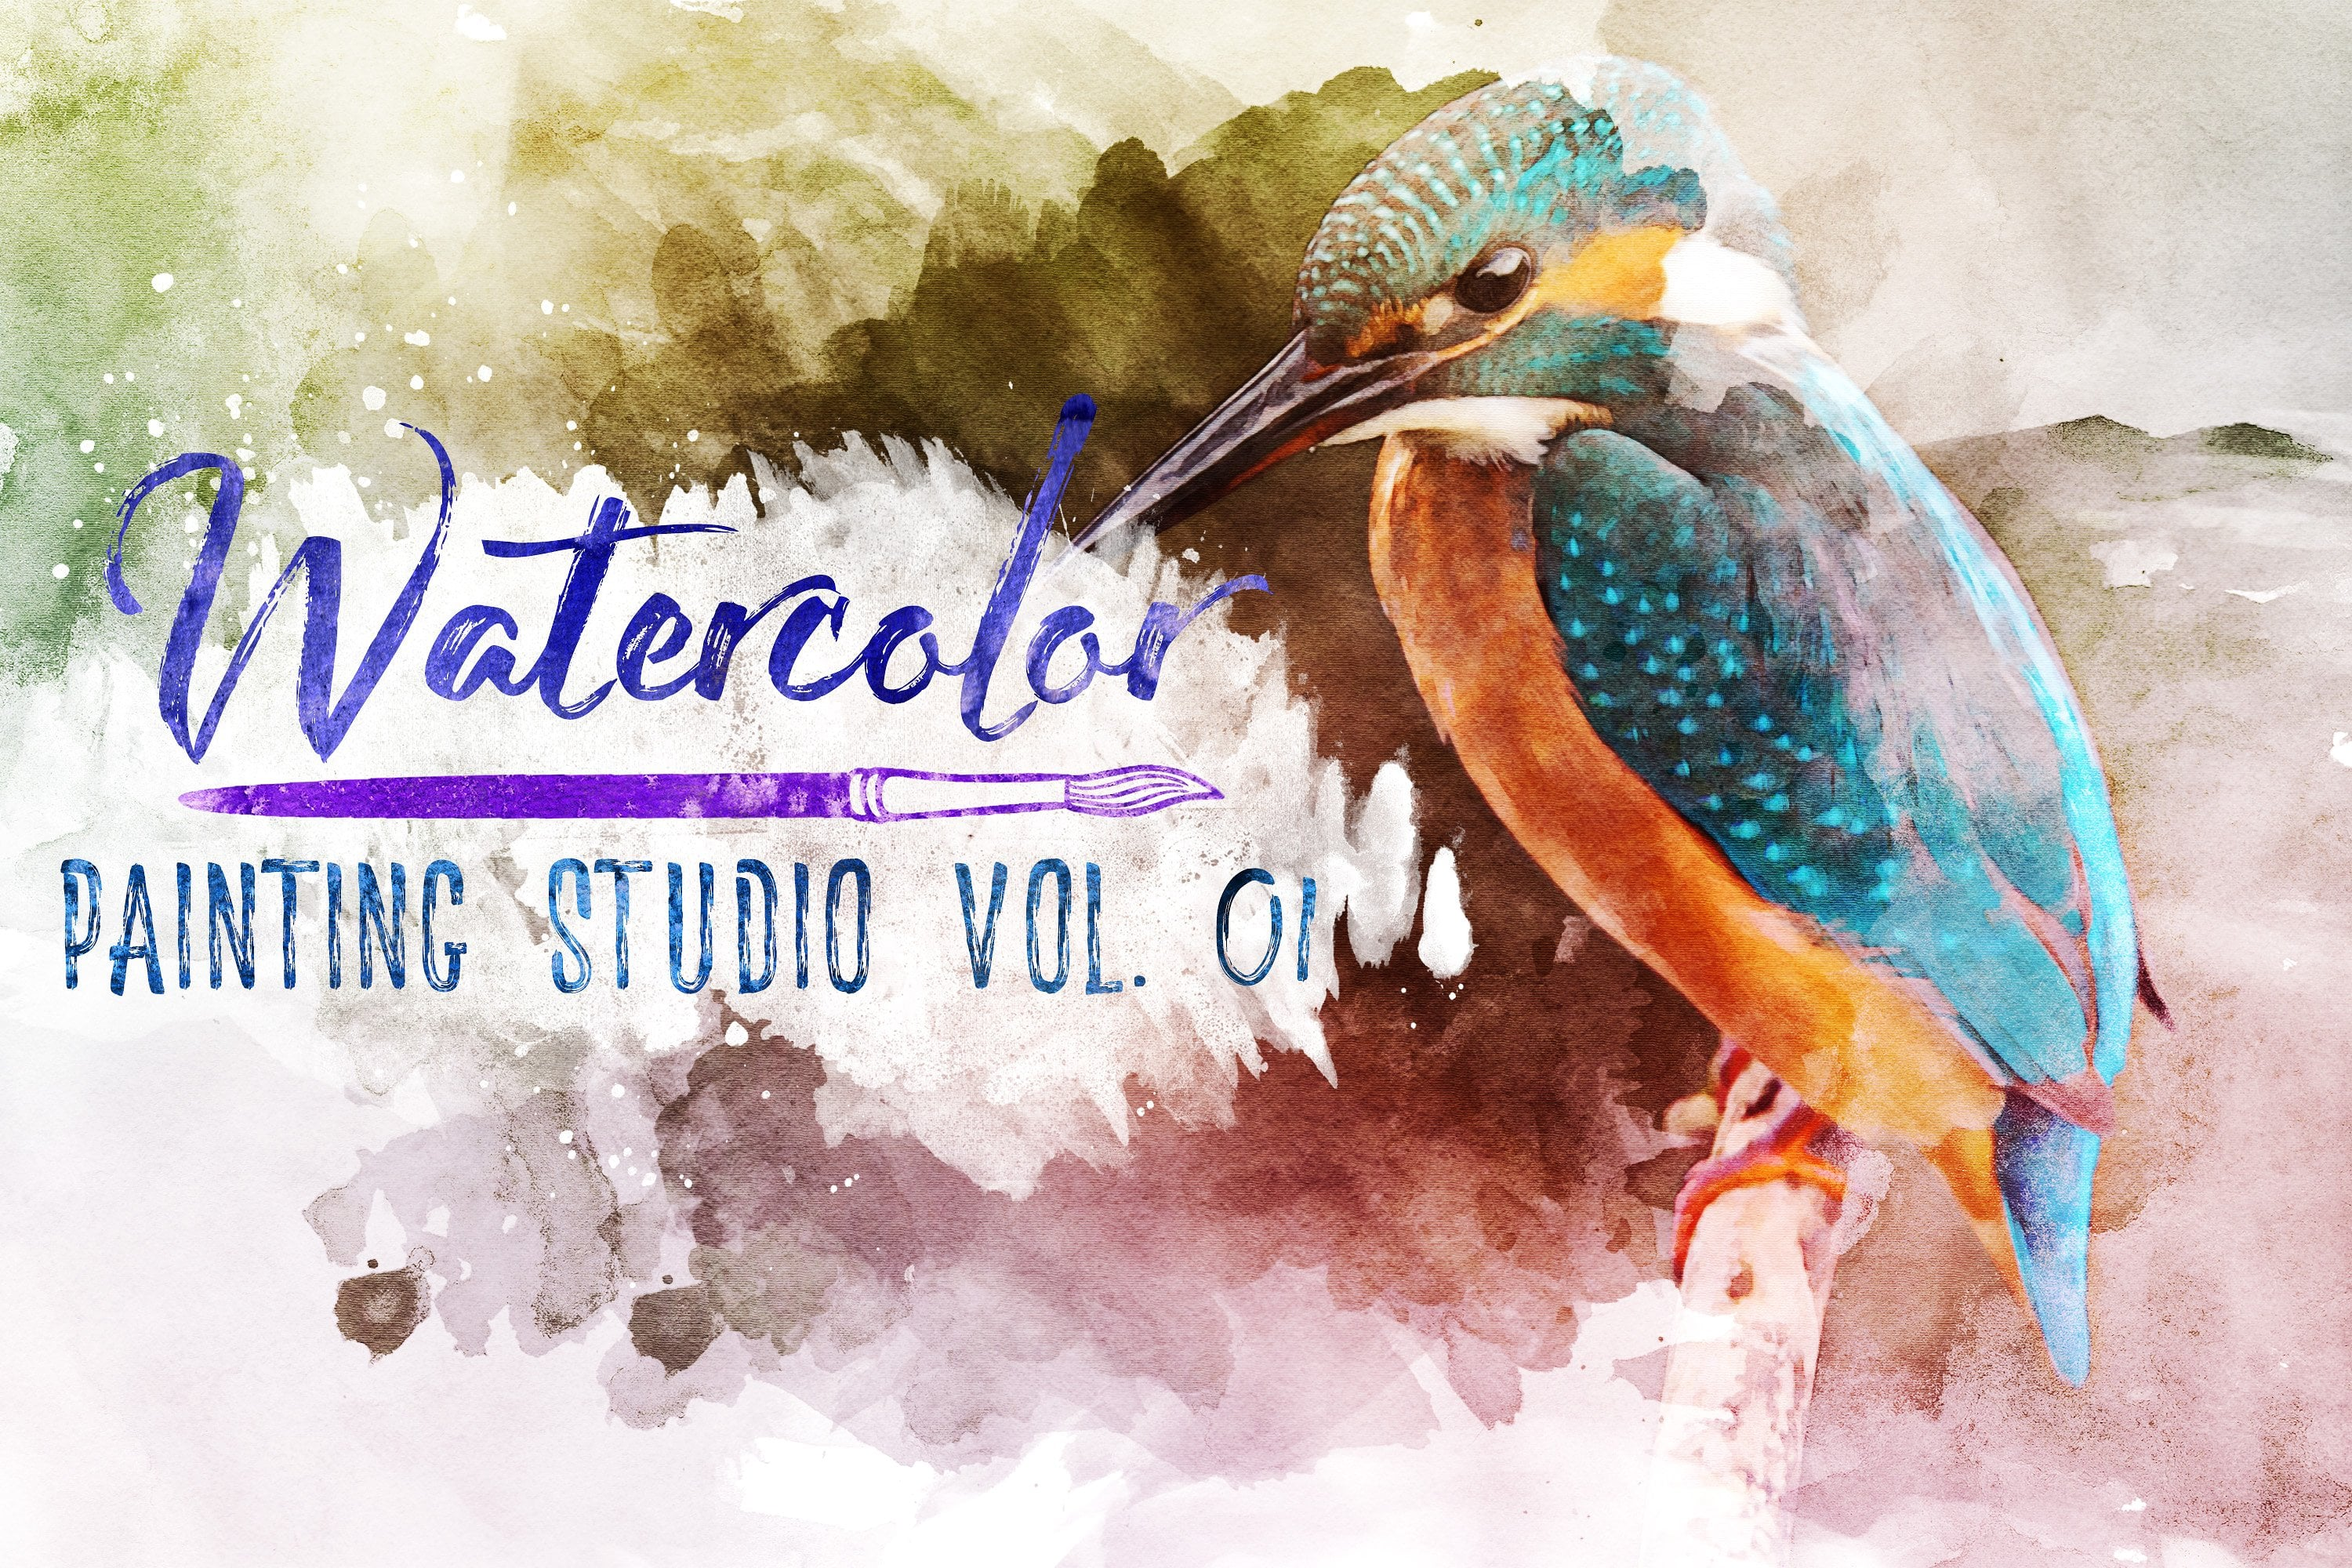 Artistic Tools: Photoshop Bundle with 88% OFF - preview 01 1 3